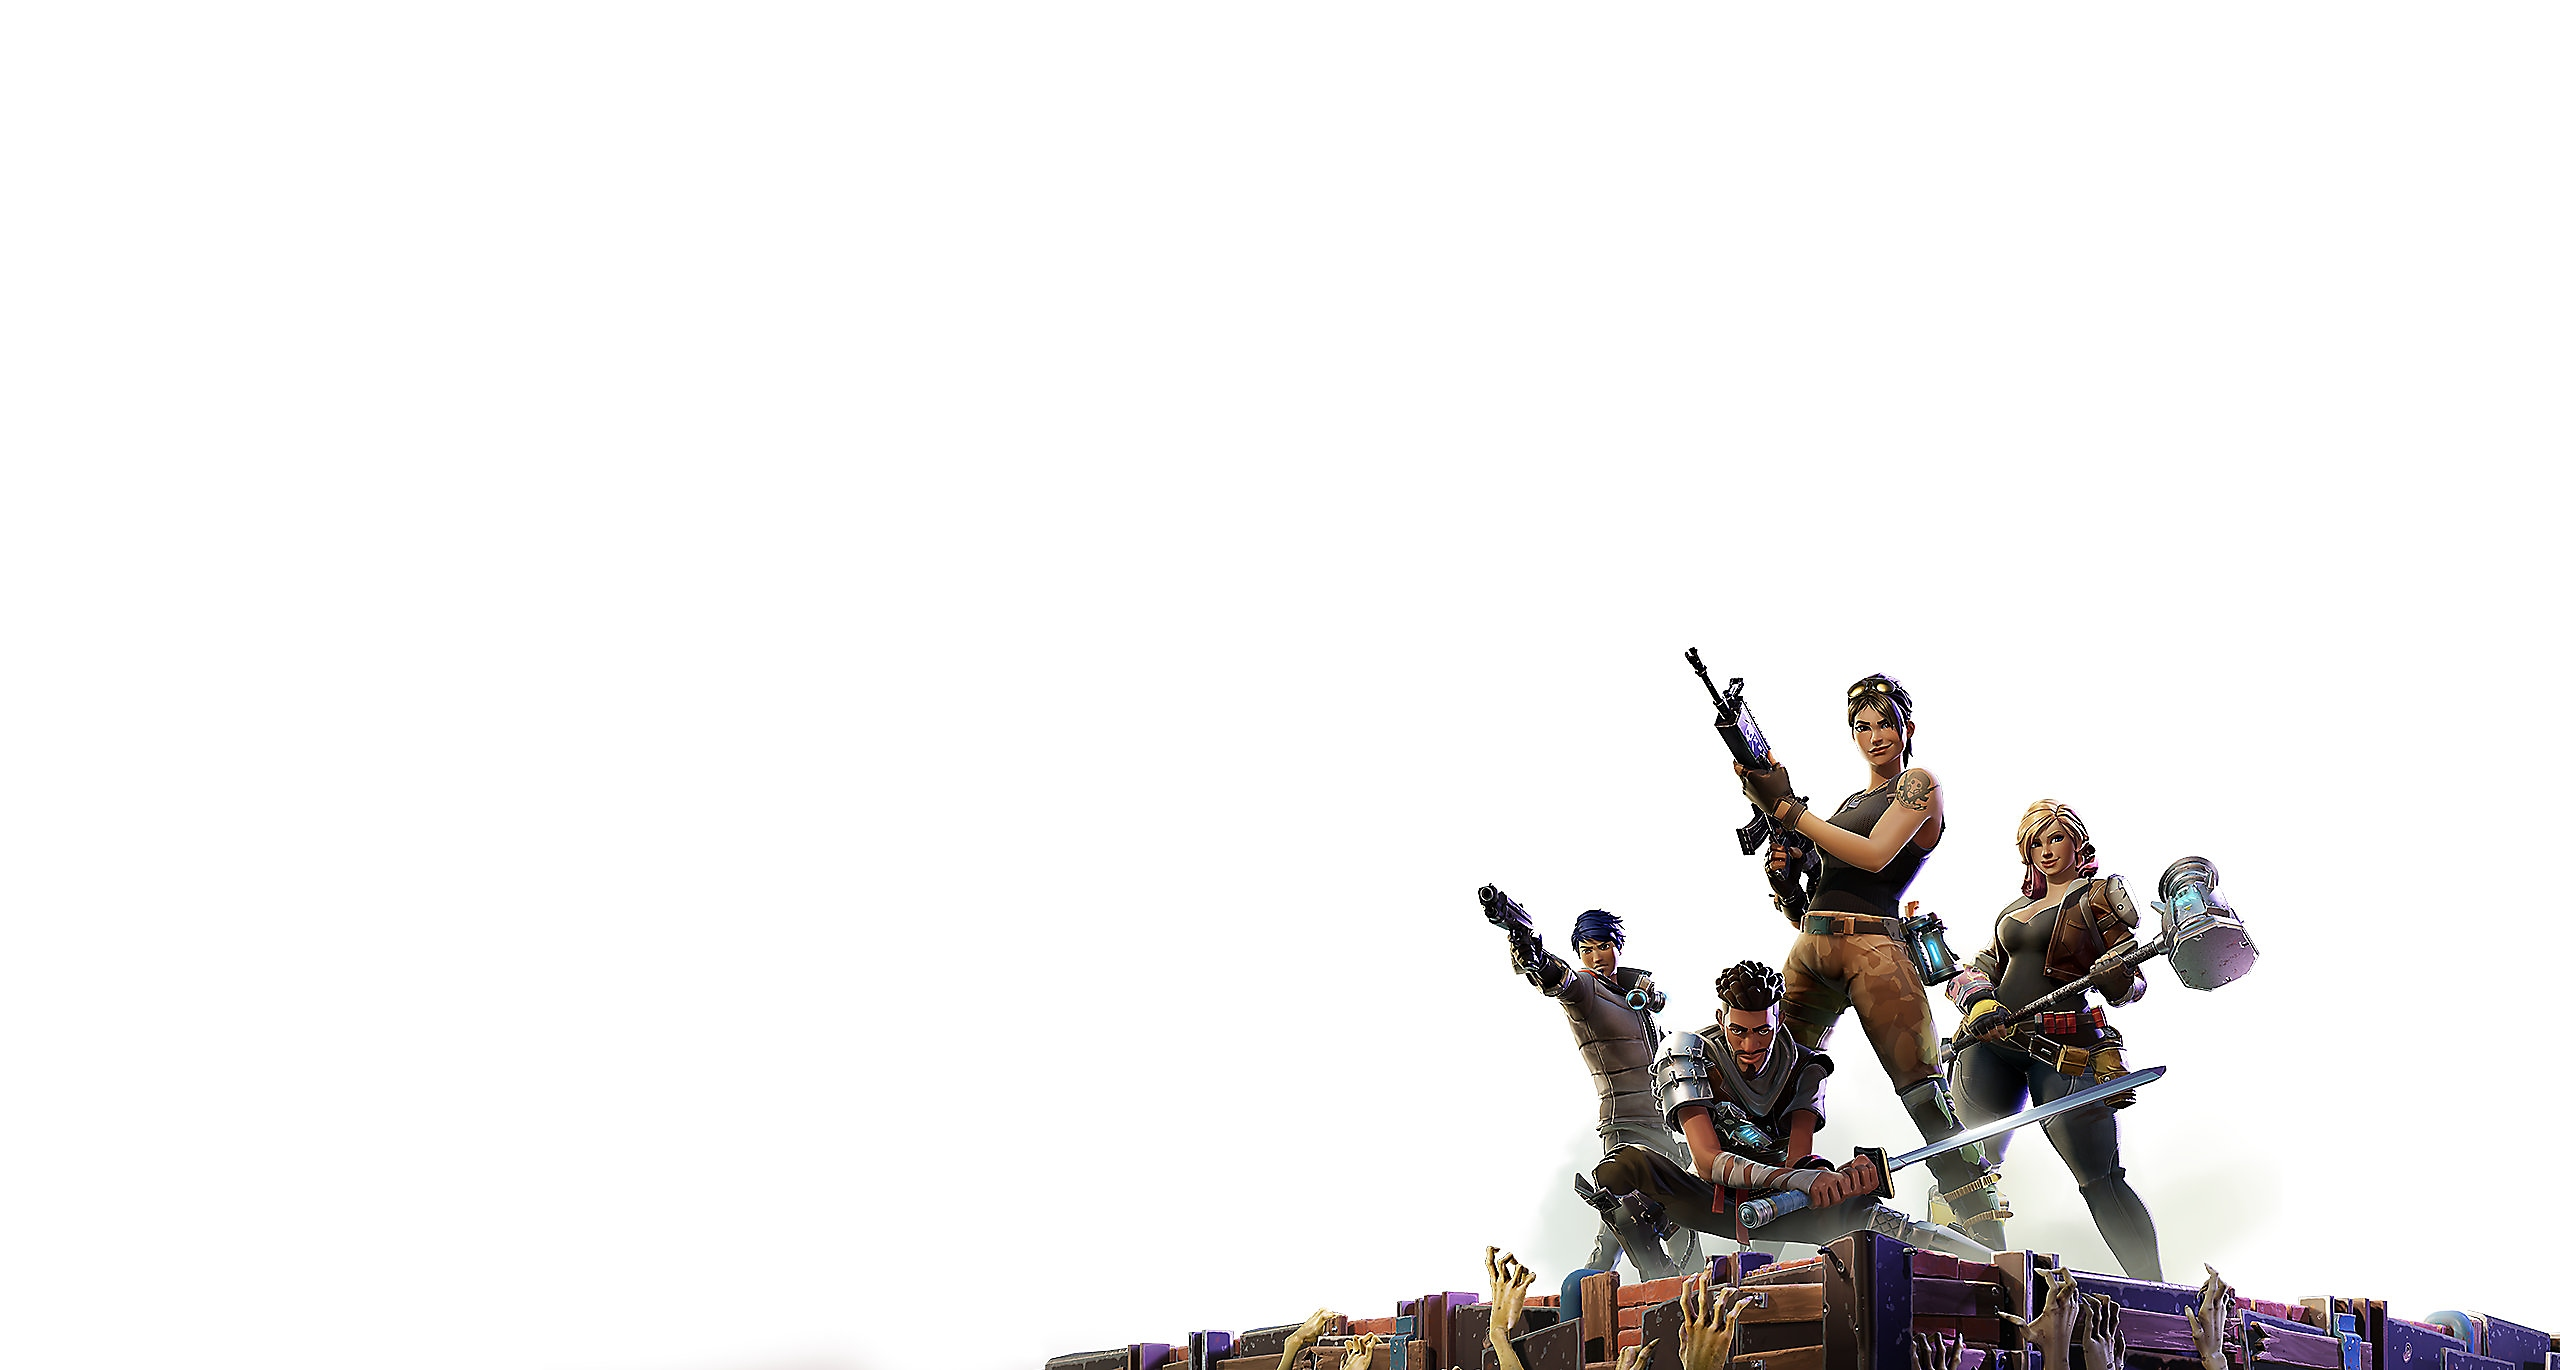 Fortnite — Save the World Section Background